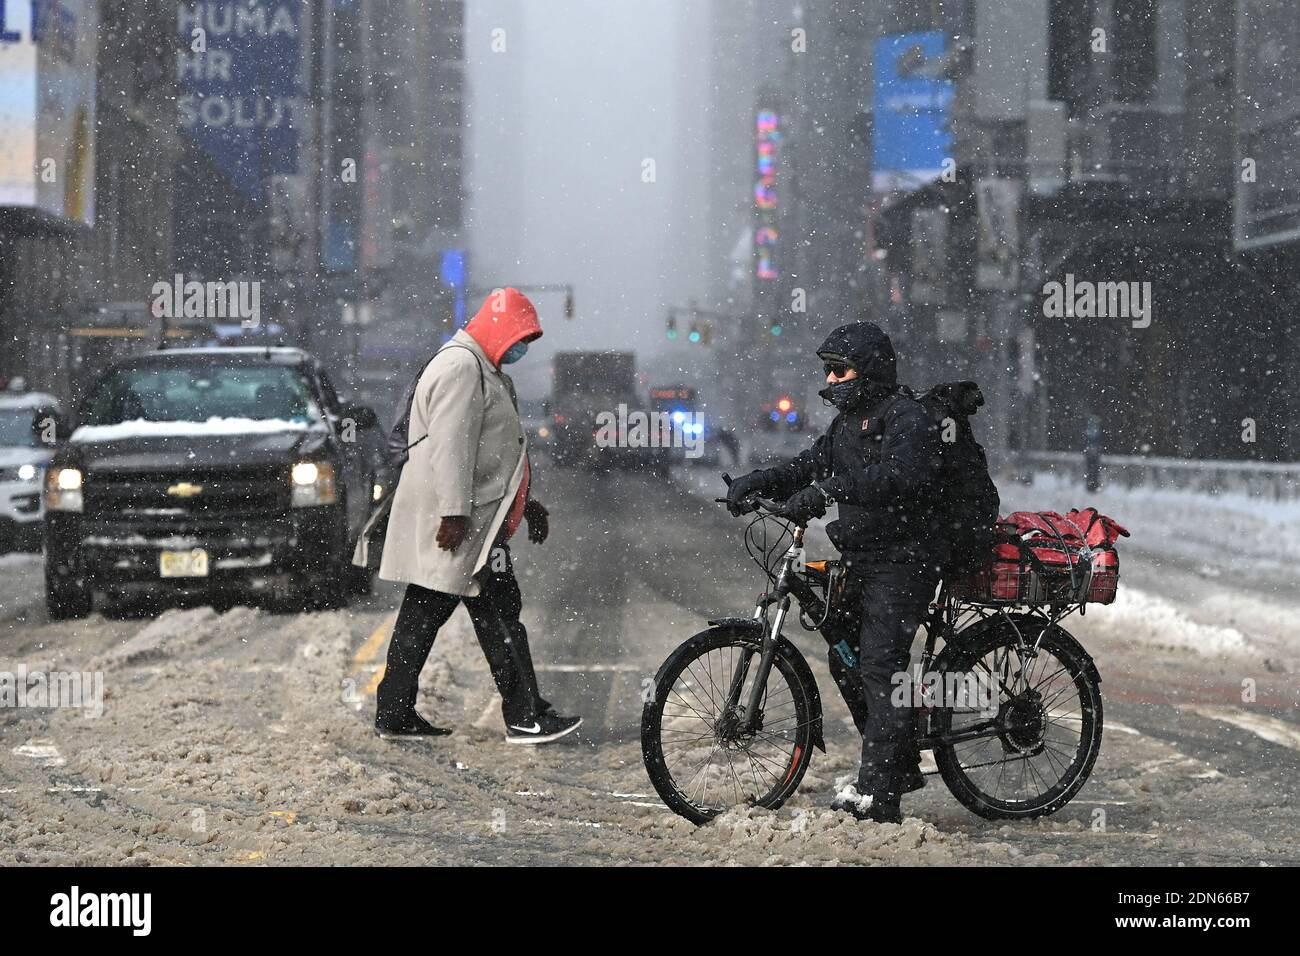 New York, USA. 17th Dec, 2020. A food delivery person on a bicycle waits to cross 42nd Street at the tail end of a nor'easter that brought more than a foot of snow to some parts of the city, New York, NY, December 17, 2020. As a COVID-19 pandemic second wave grips the United States, restaurants continue to struggle as cities like New York have one again banned indoor dining, as well as outdoor dining during the snowstorm. (Photo by Anthony Behar/Sipa USA) Credit: Sipa USA/Alamy Live News Stock Photo